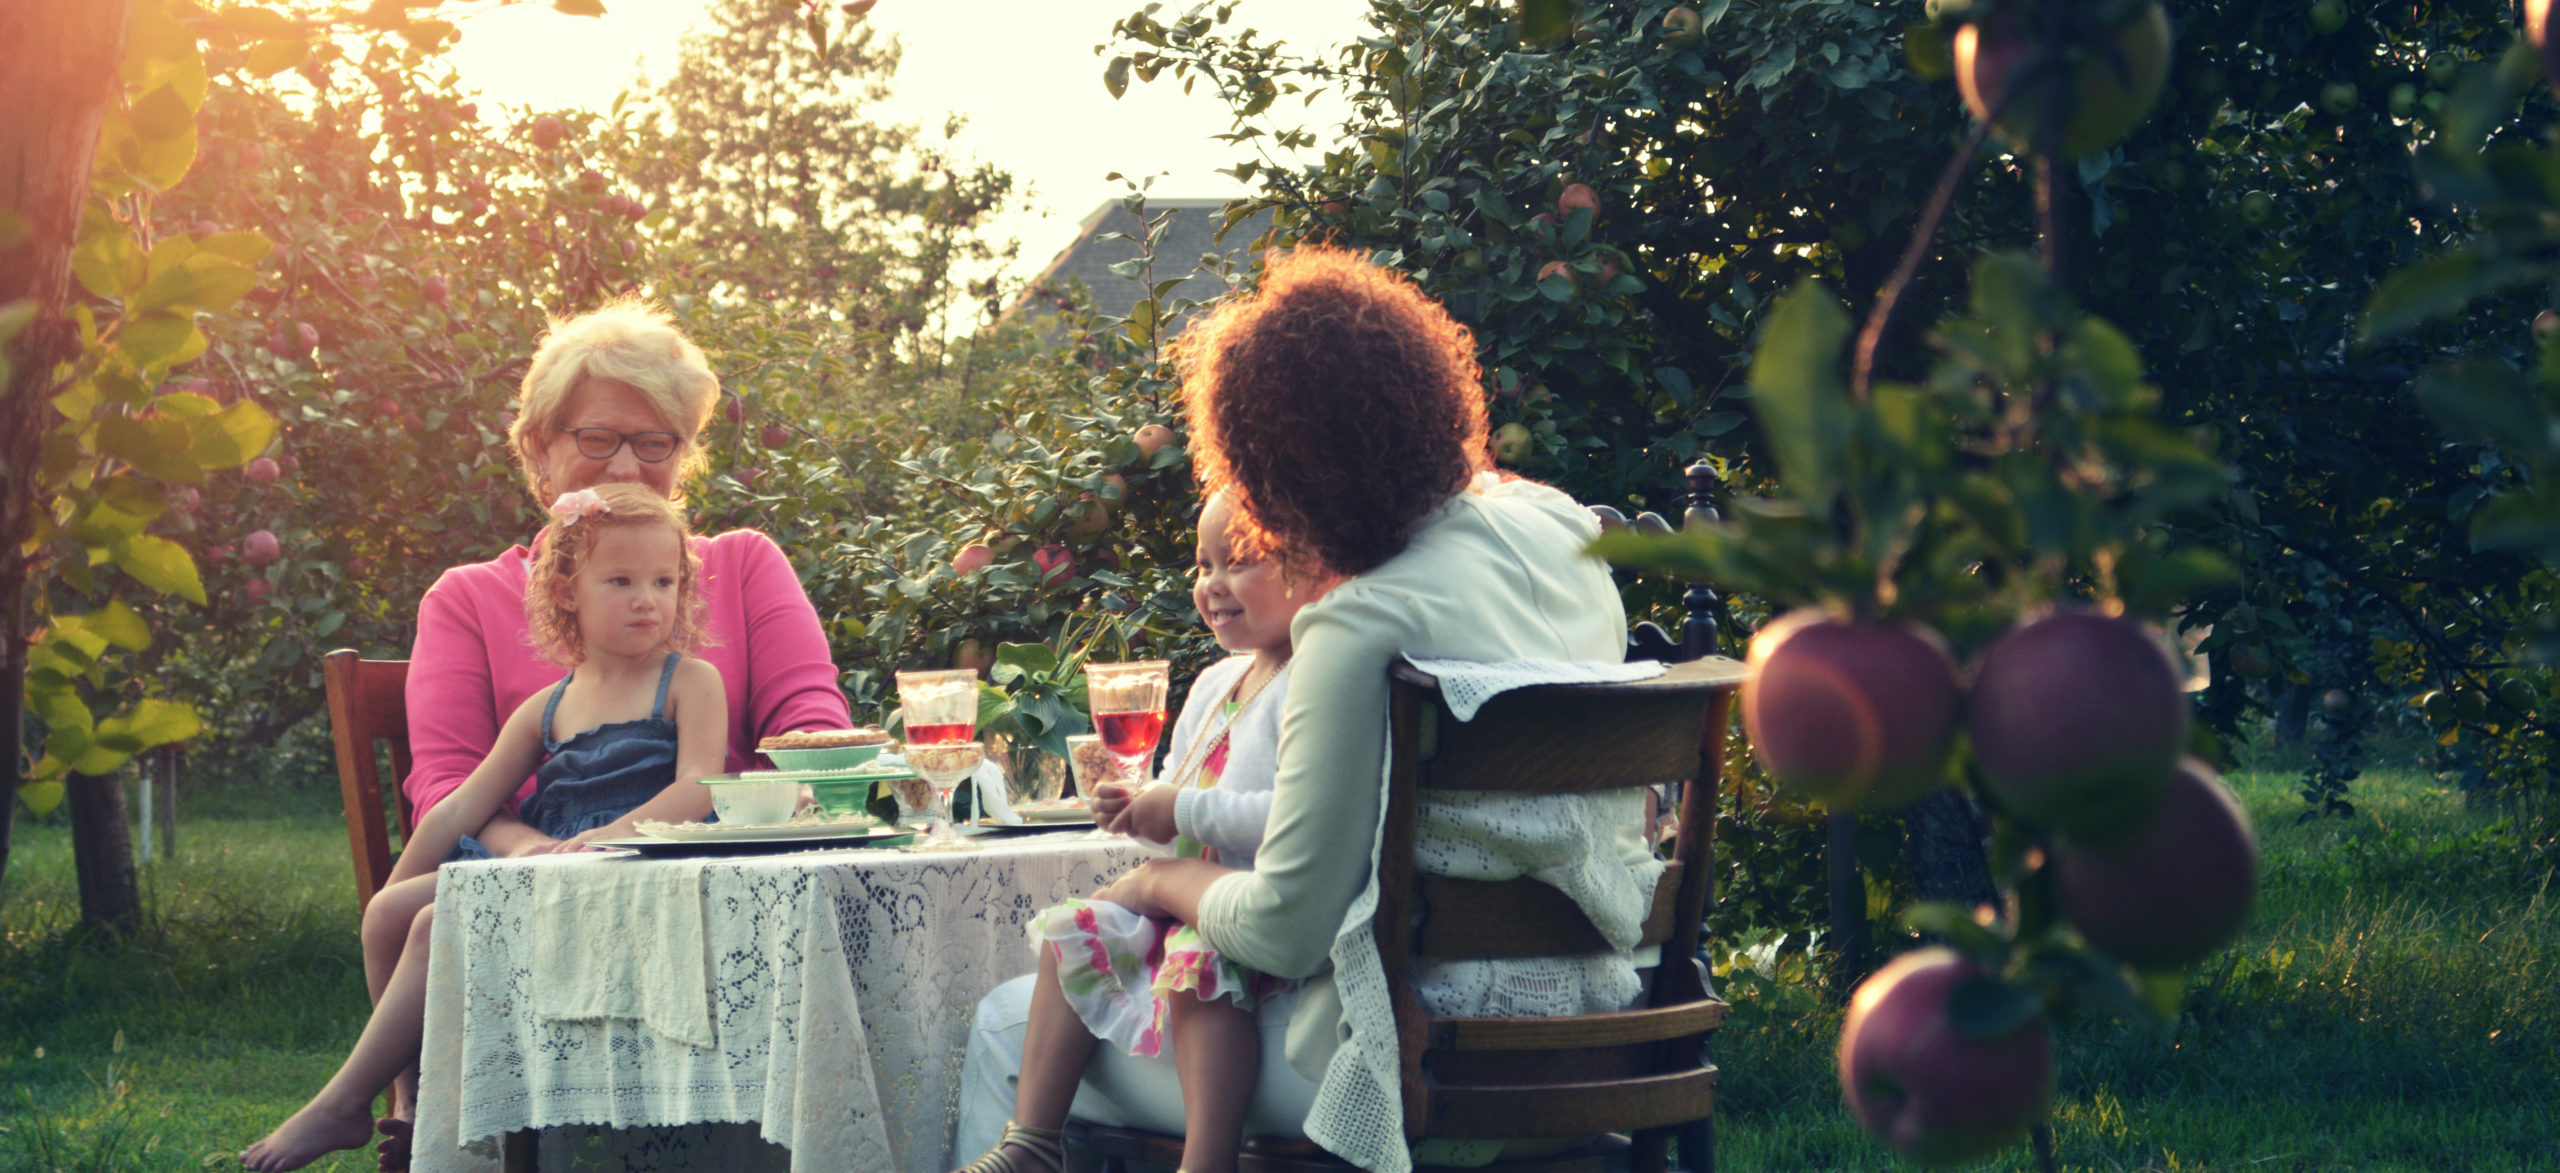 Two women with children on their lap dining in an orchard